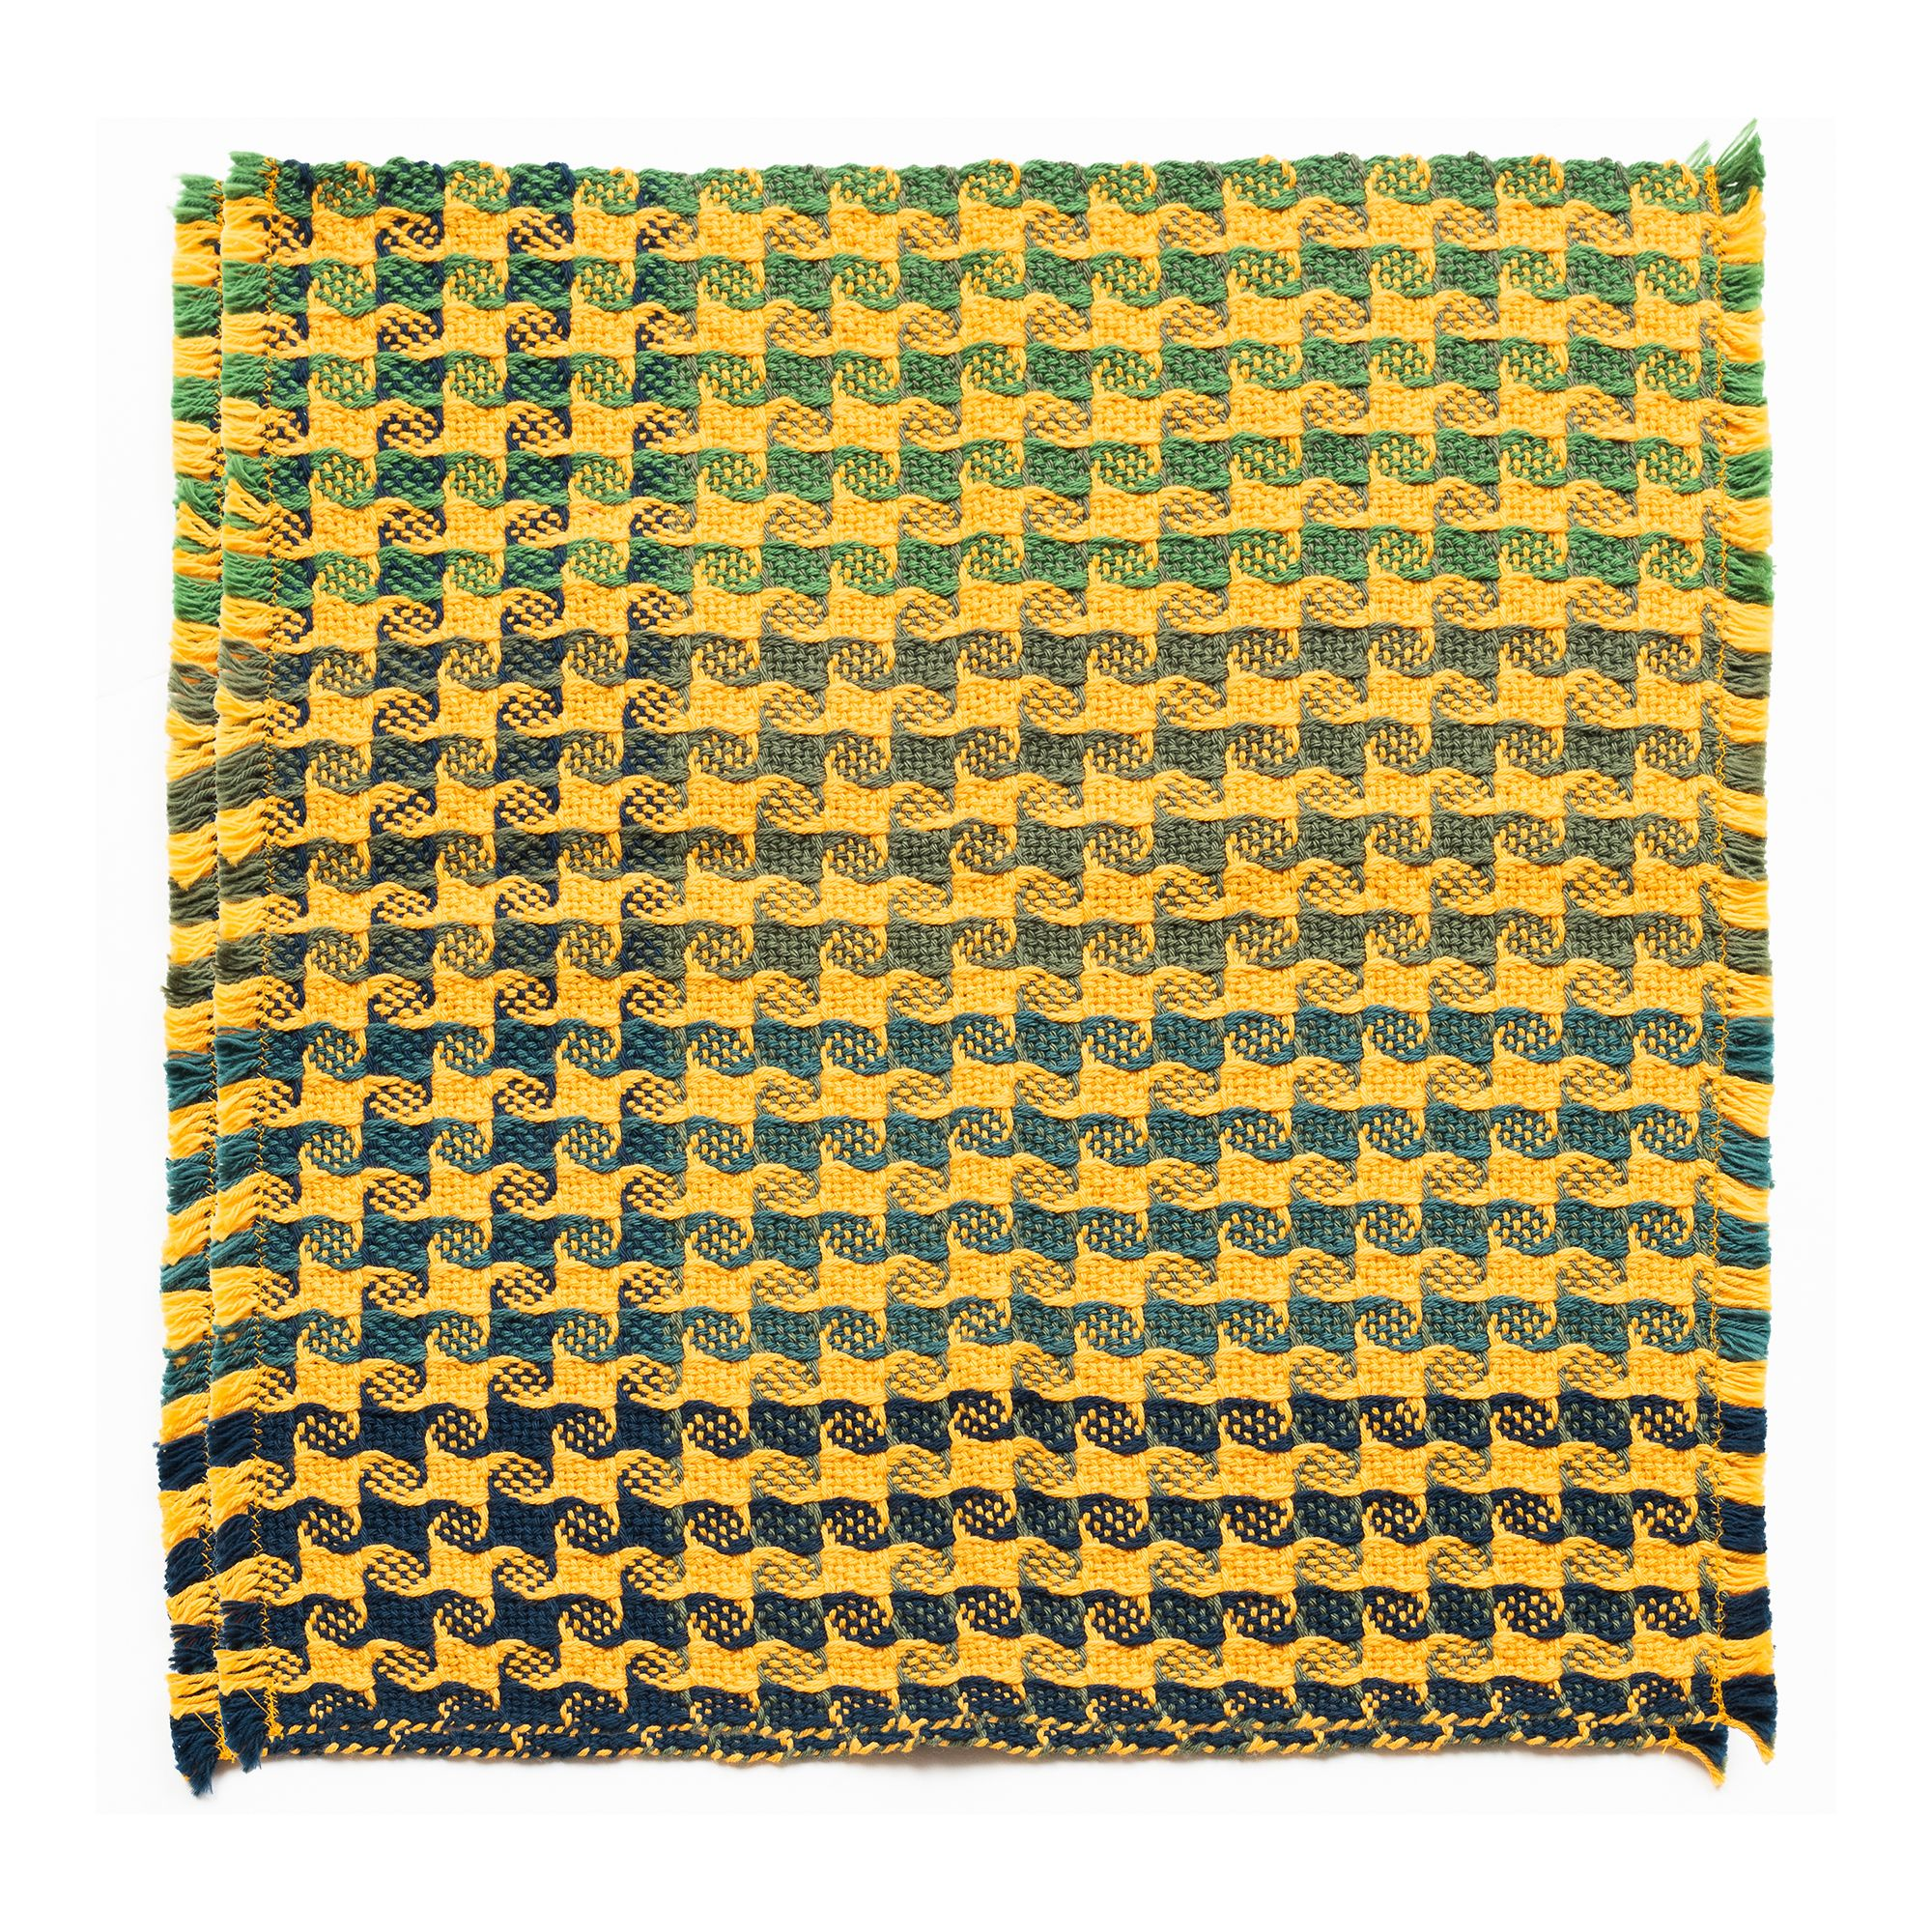 Mountain Valley Weavers  X Aspen Art Museum Set of Four Yellow and Blue Ombre Napkins